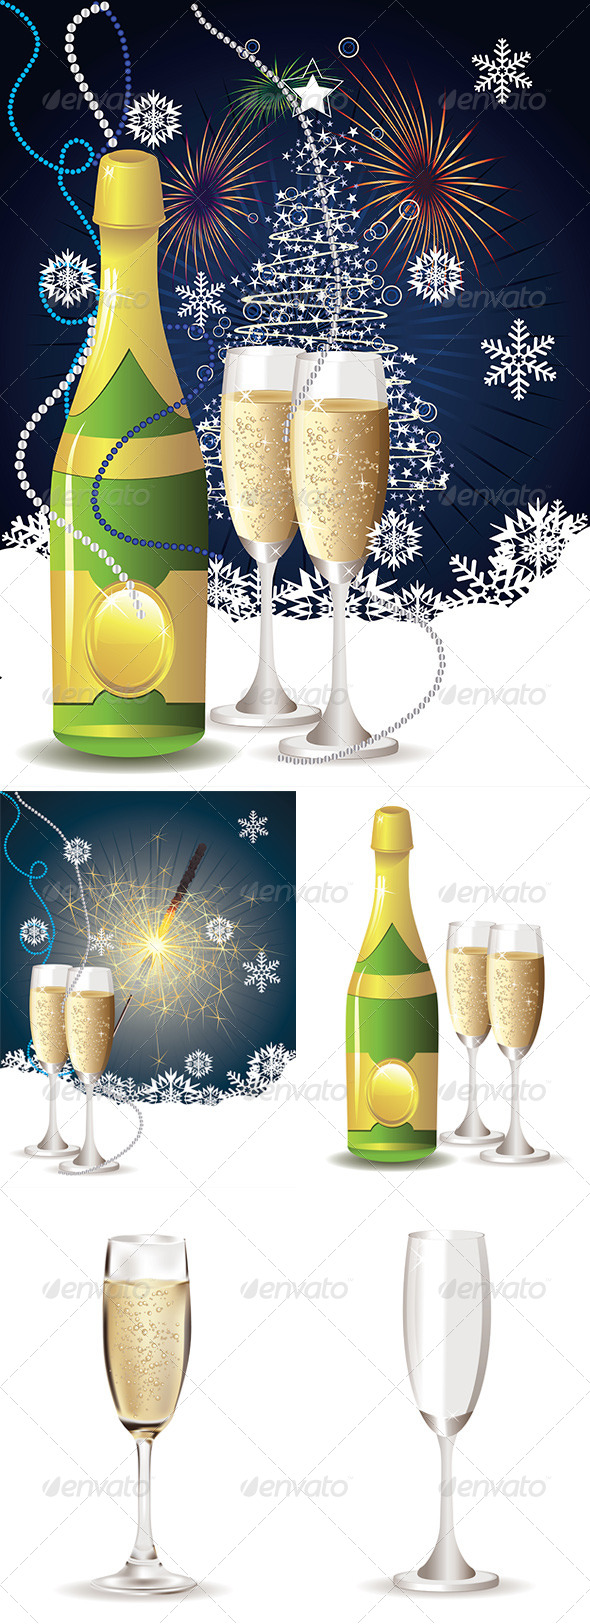 GraphicRiver Card with Champagne 8228327